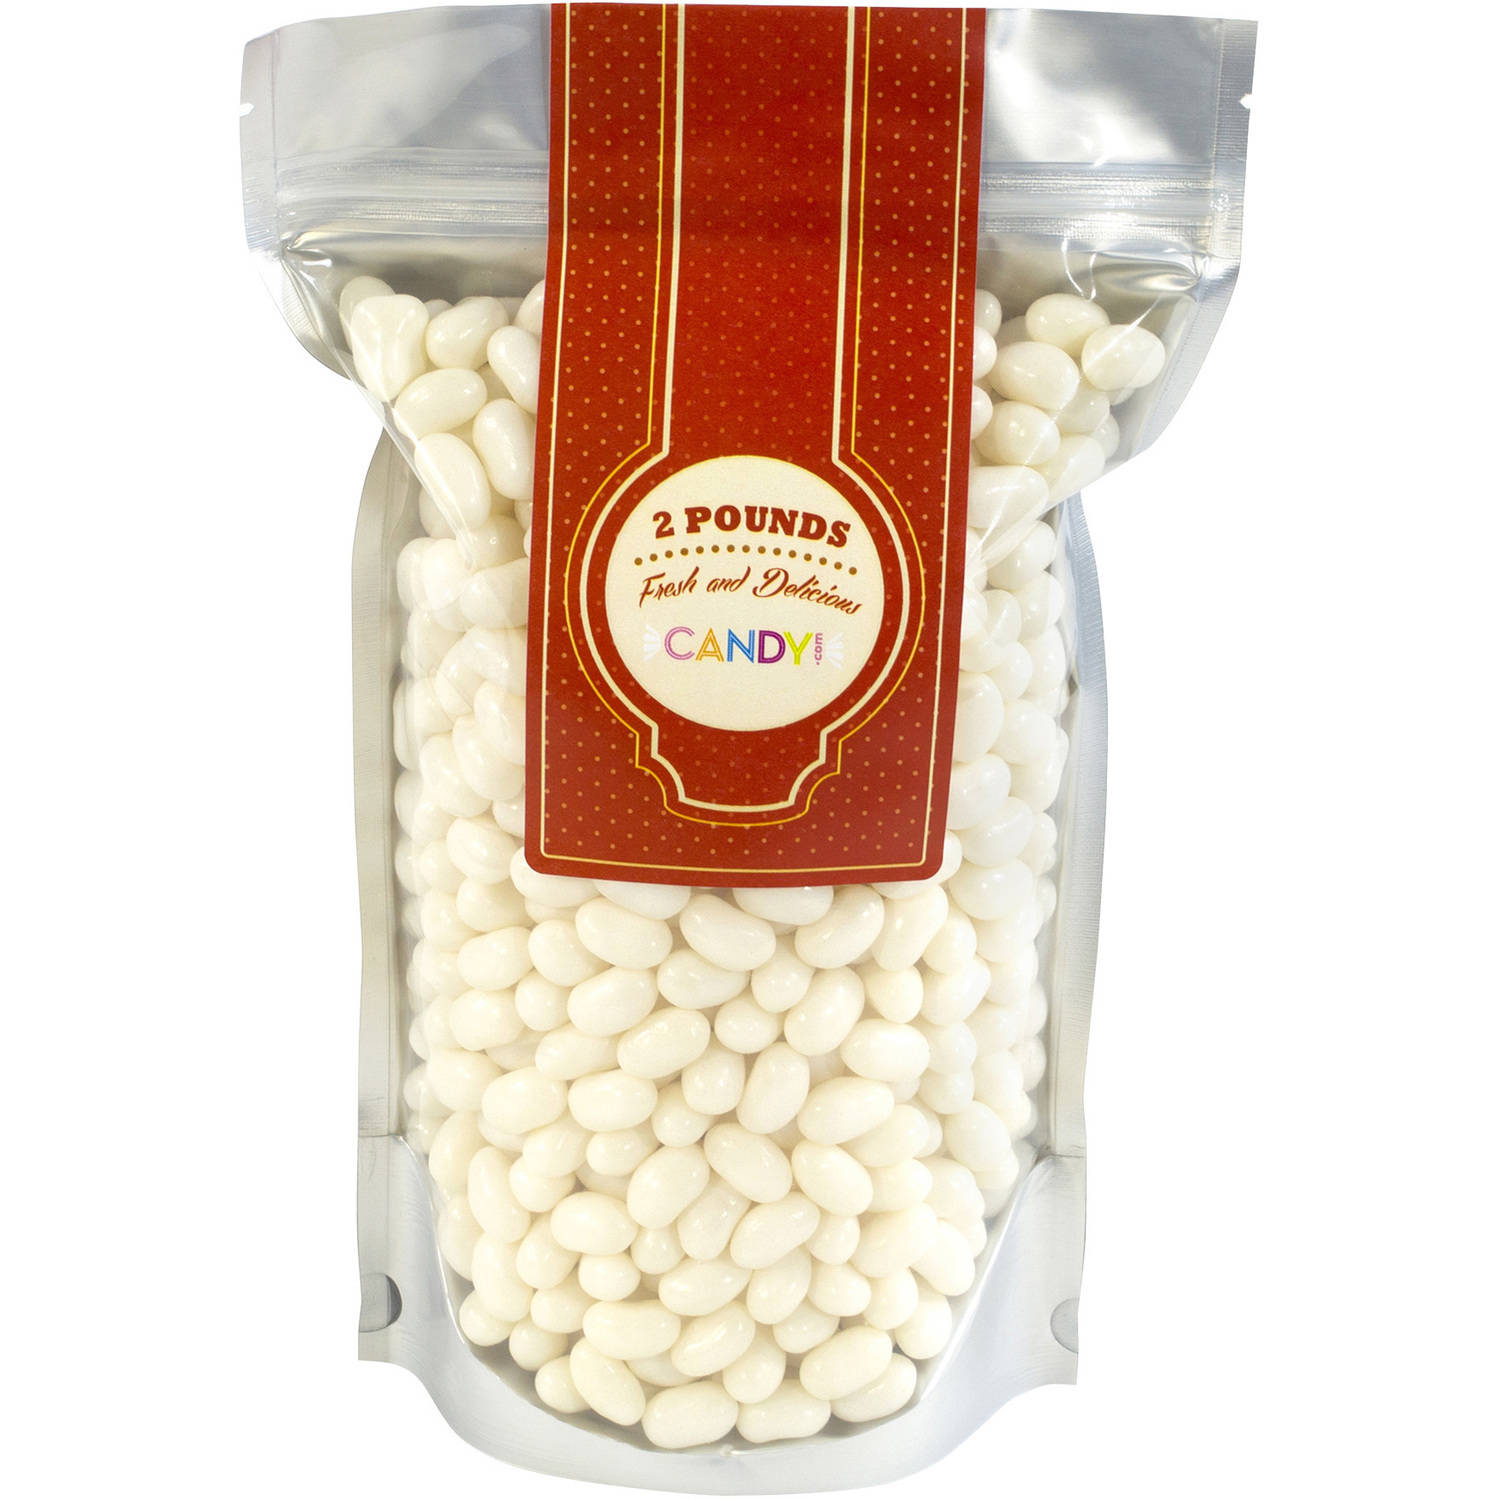 Jelly Belly Coconut Jelly Beans, 2 lbs by Jelly Belly